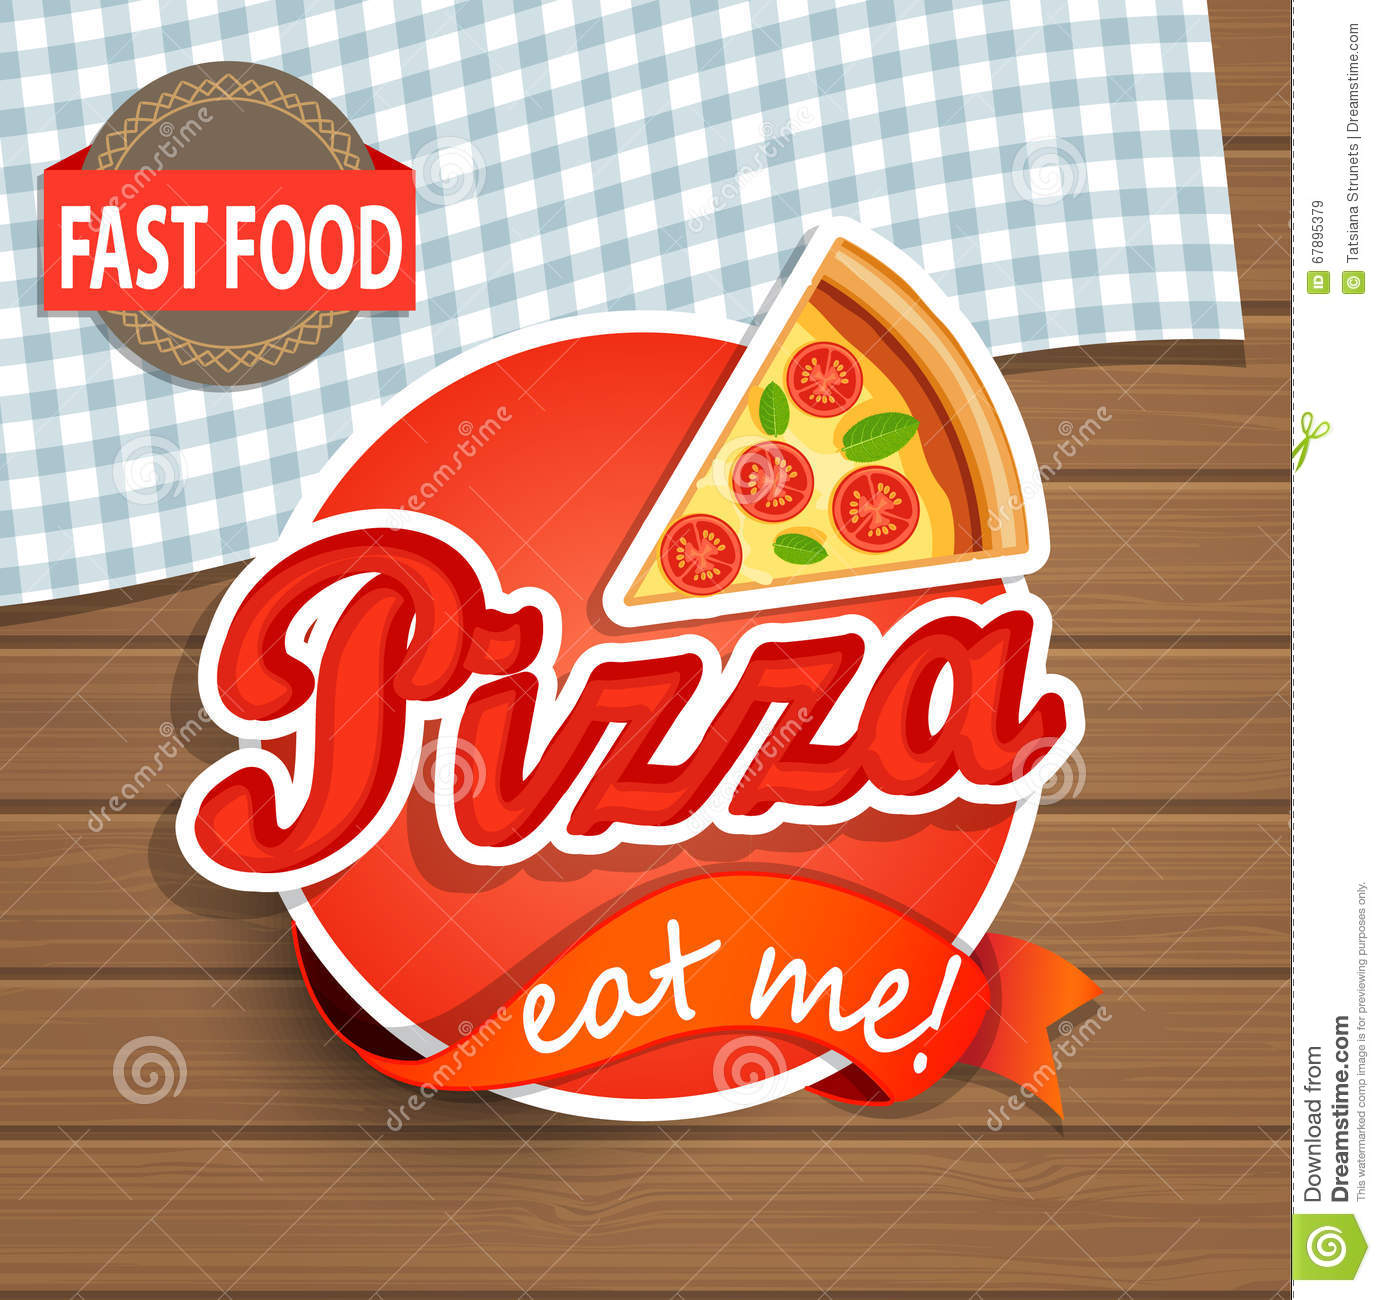 Pizza Label and Sign.